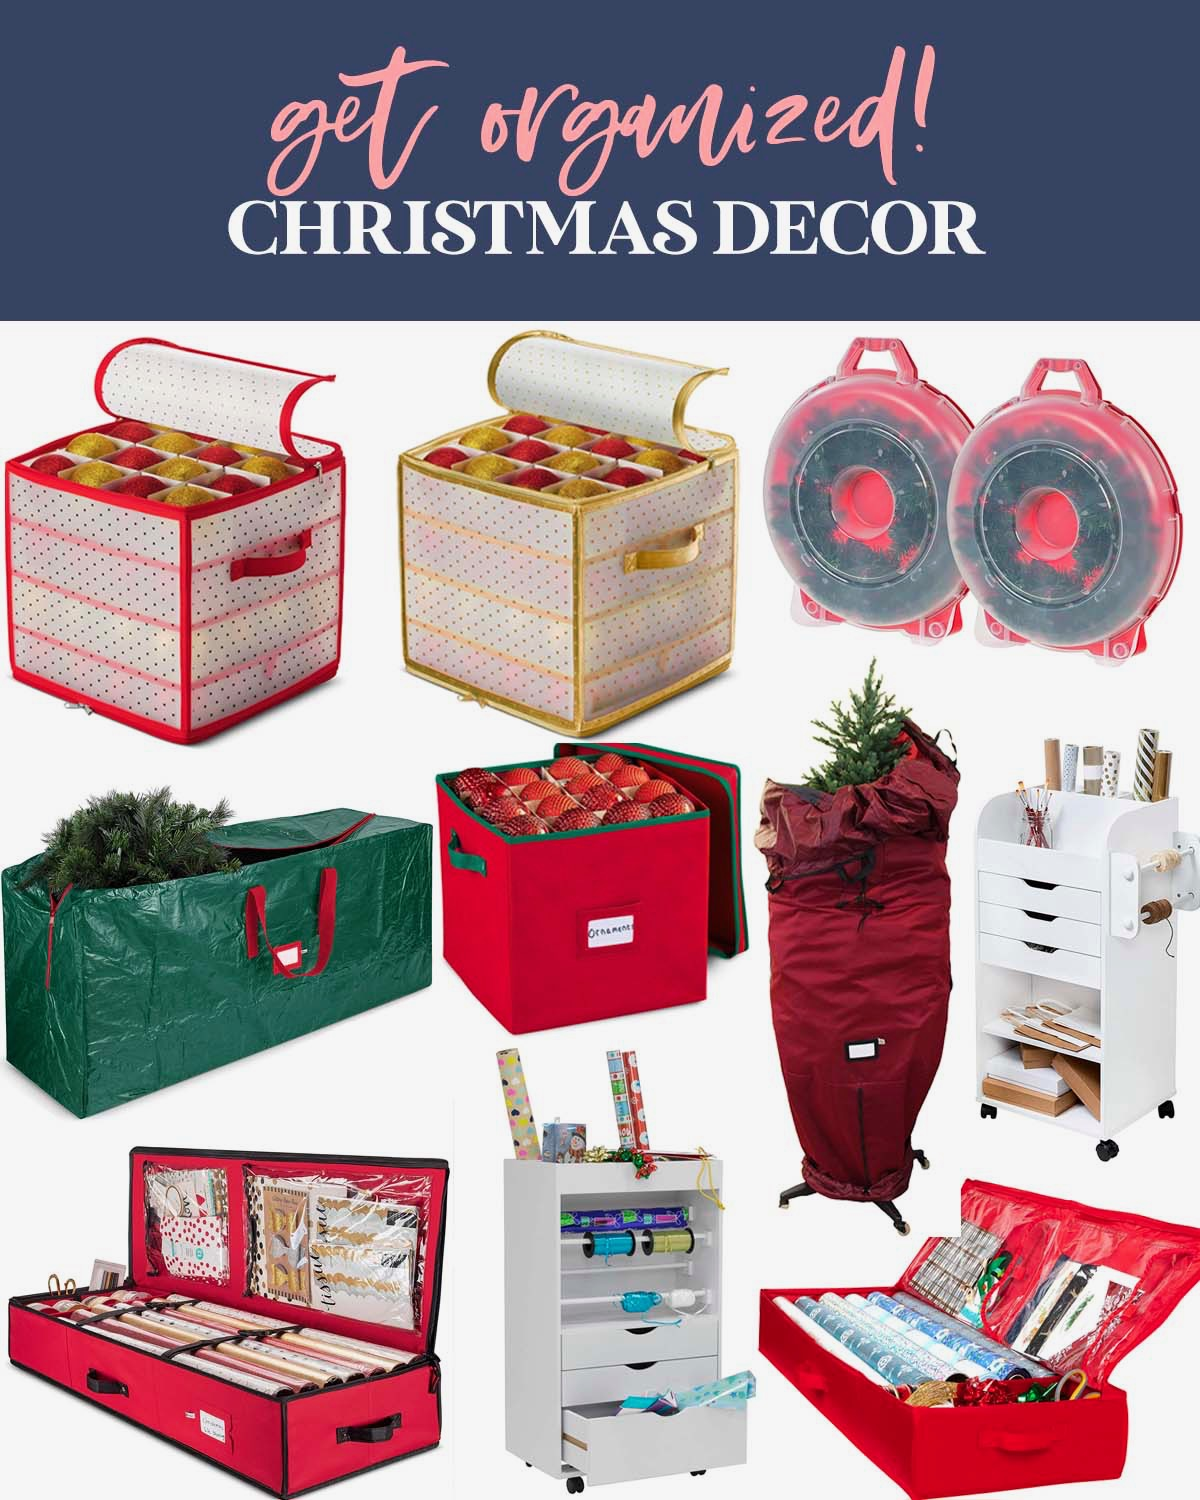 After Christmas Organization by popular Houston lifestyle blog, Fancy Ashley: collage image of a Christmas tree storage bag, ornament storage bins, wrapping paper caddy, wrapping paper storage boxes, and wreath boxes.